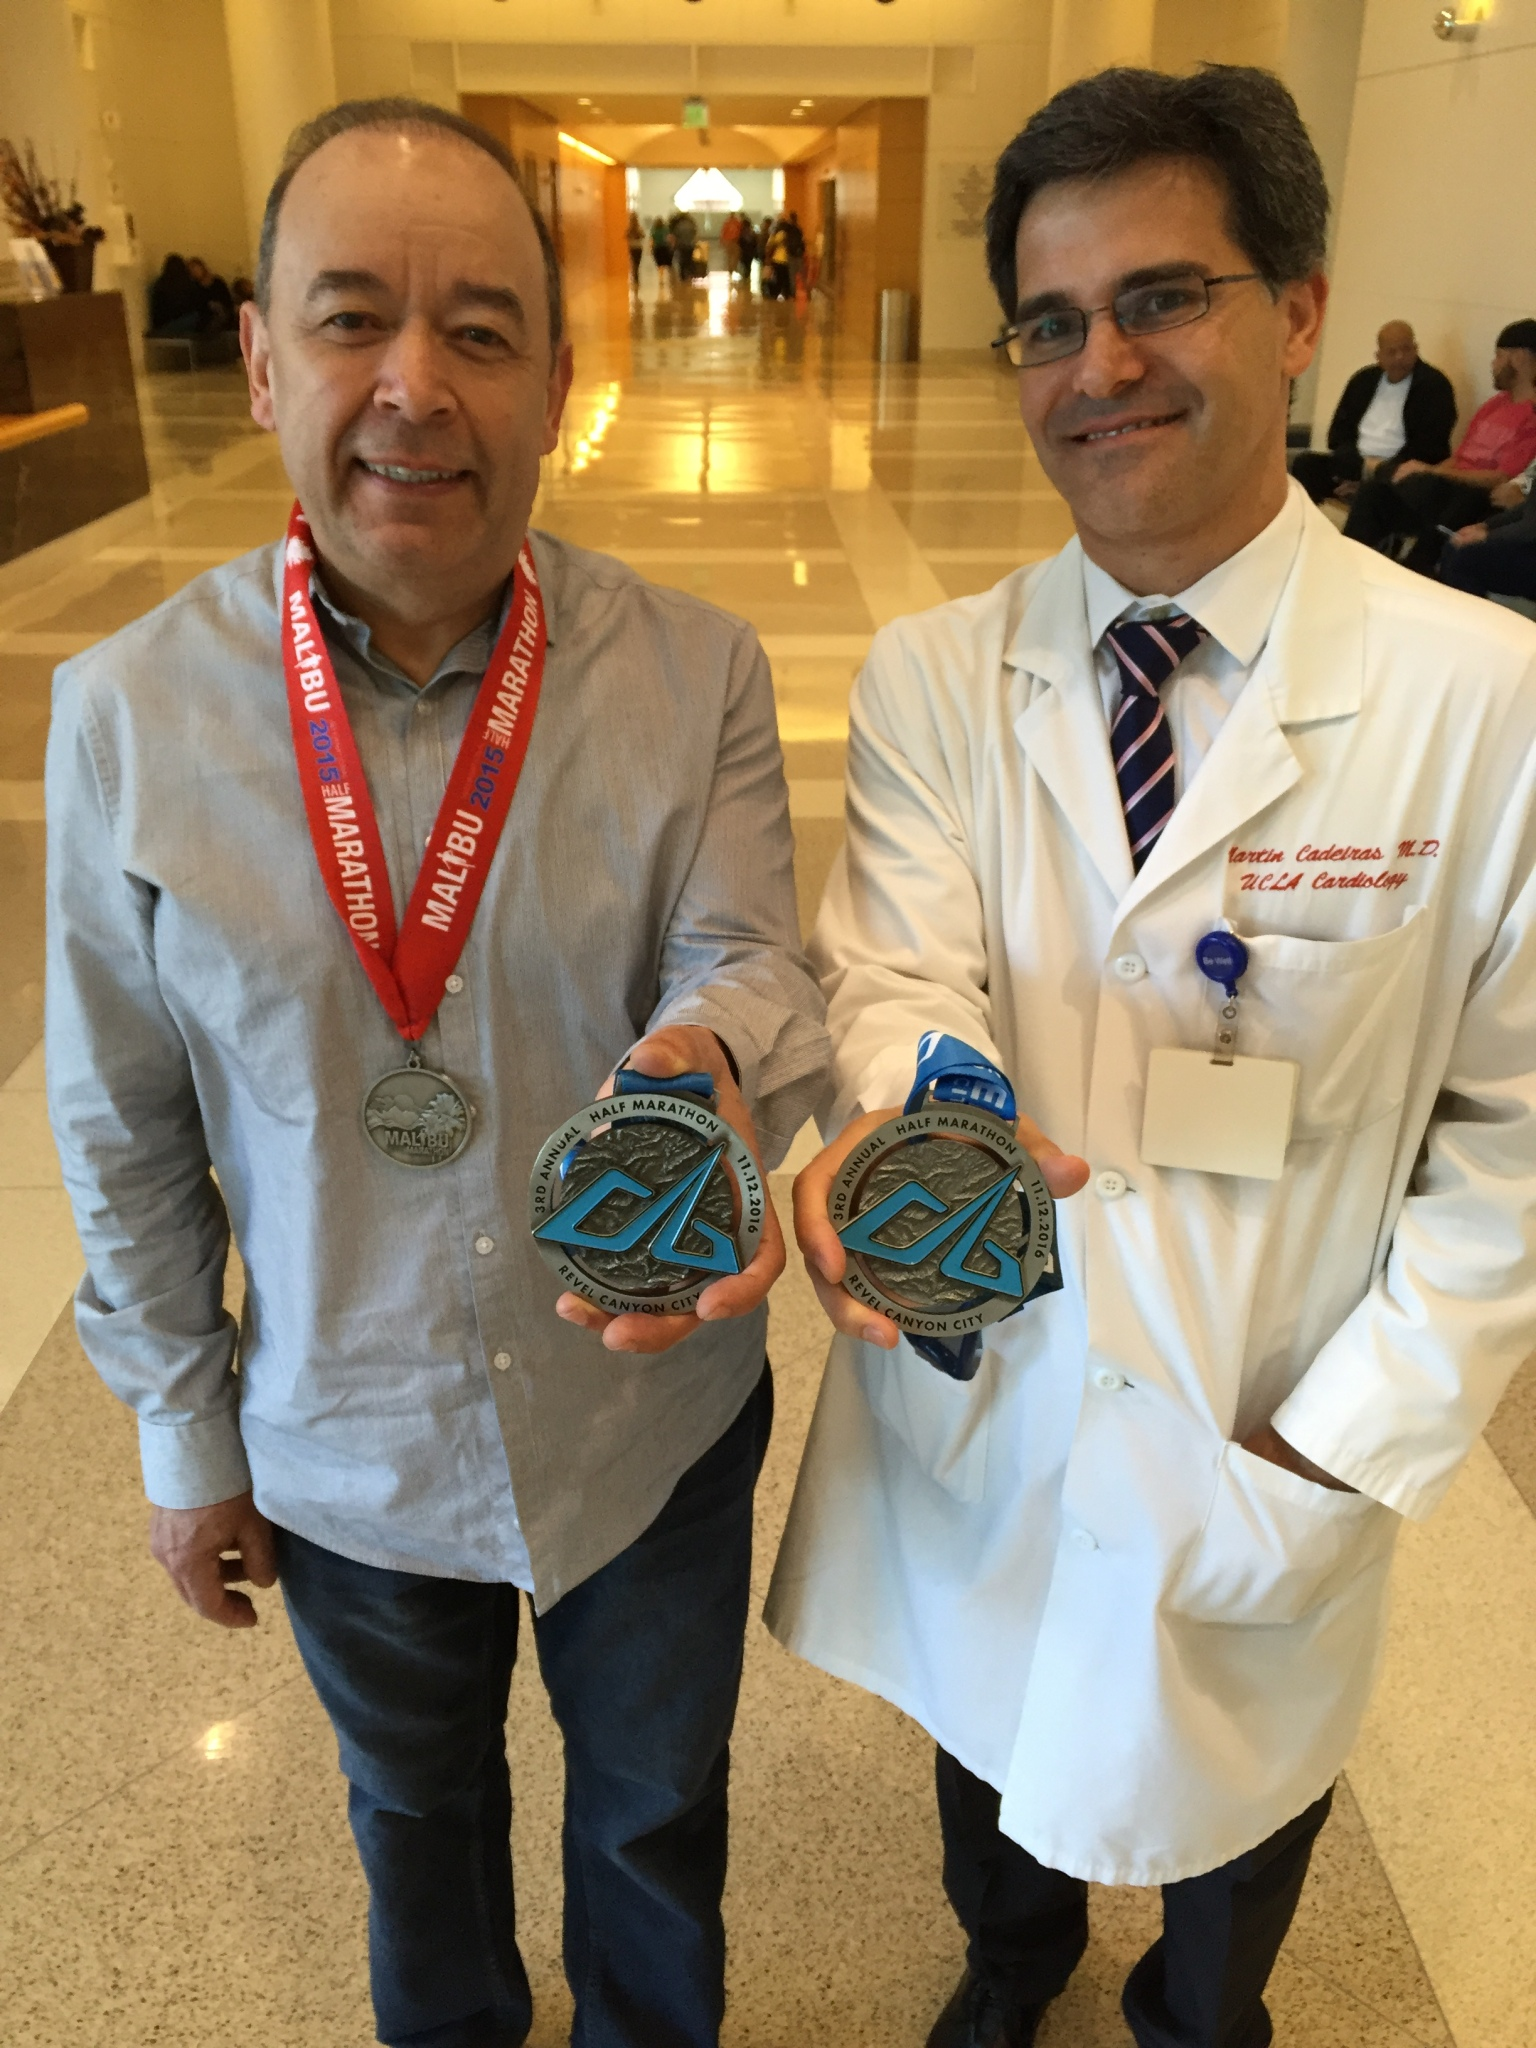 Tony Flores, at left, and Dr. Martin Cadeiras show off their half-marathon medals at Ronald Reagan UCLA Medical Center, where Flores had his heart transplant surgery.